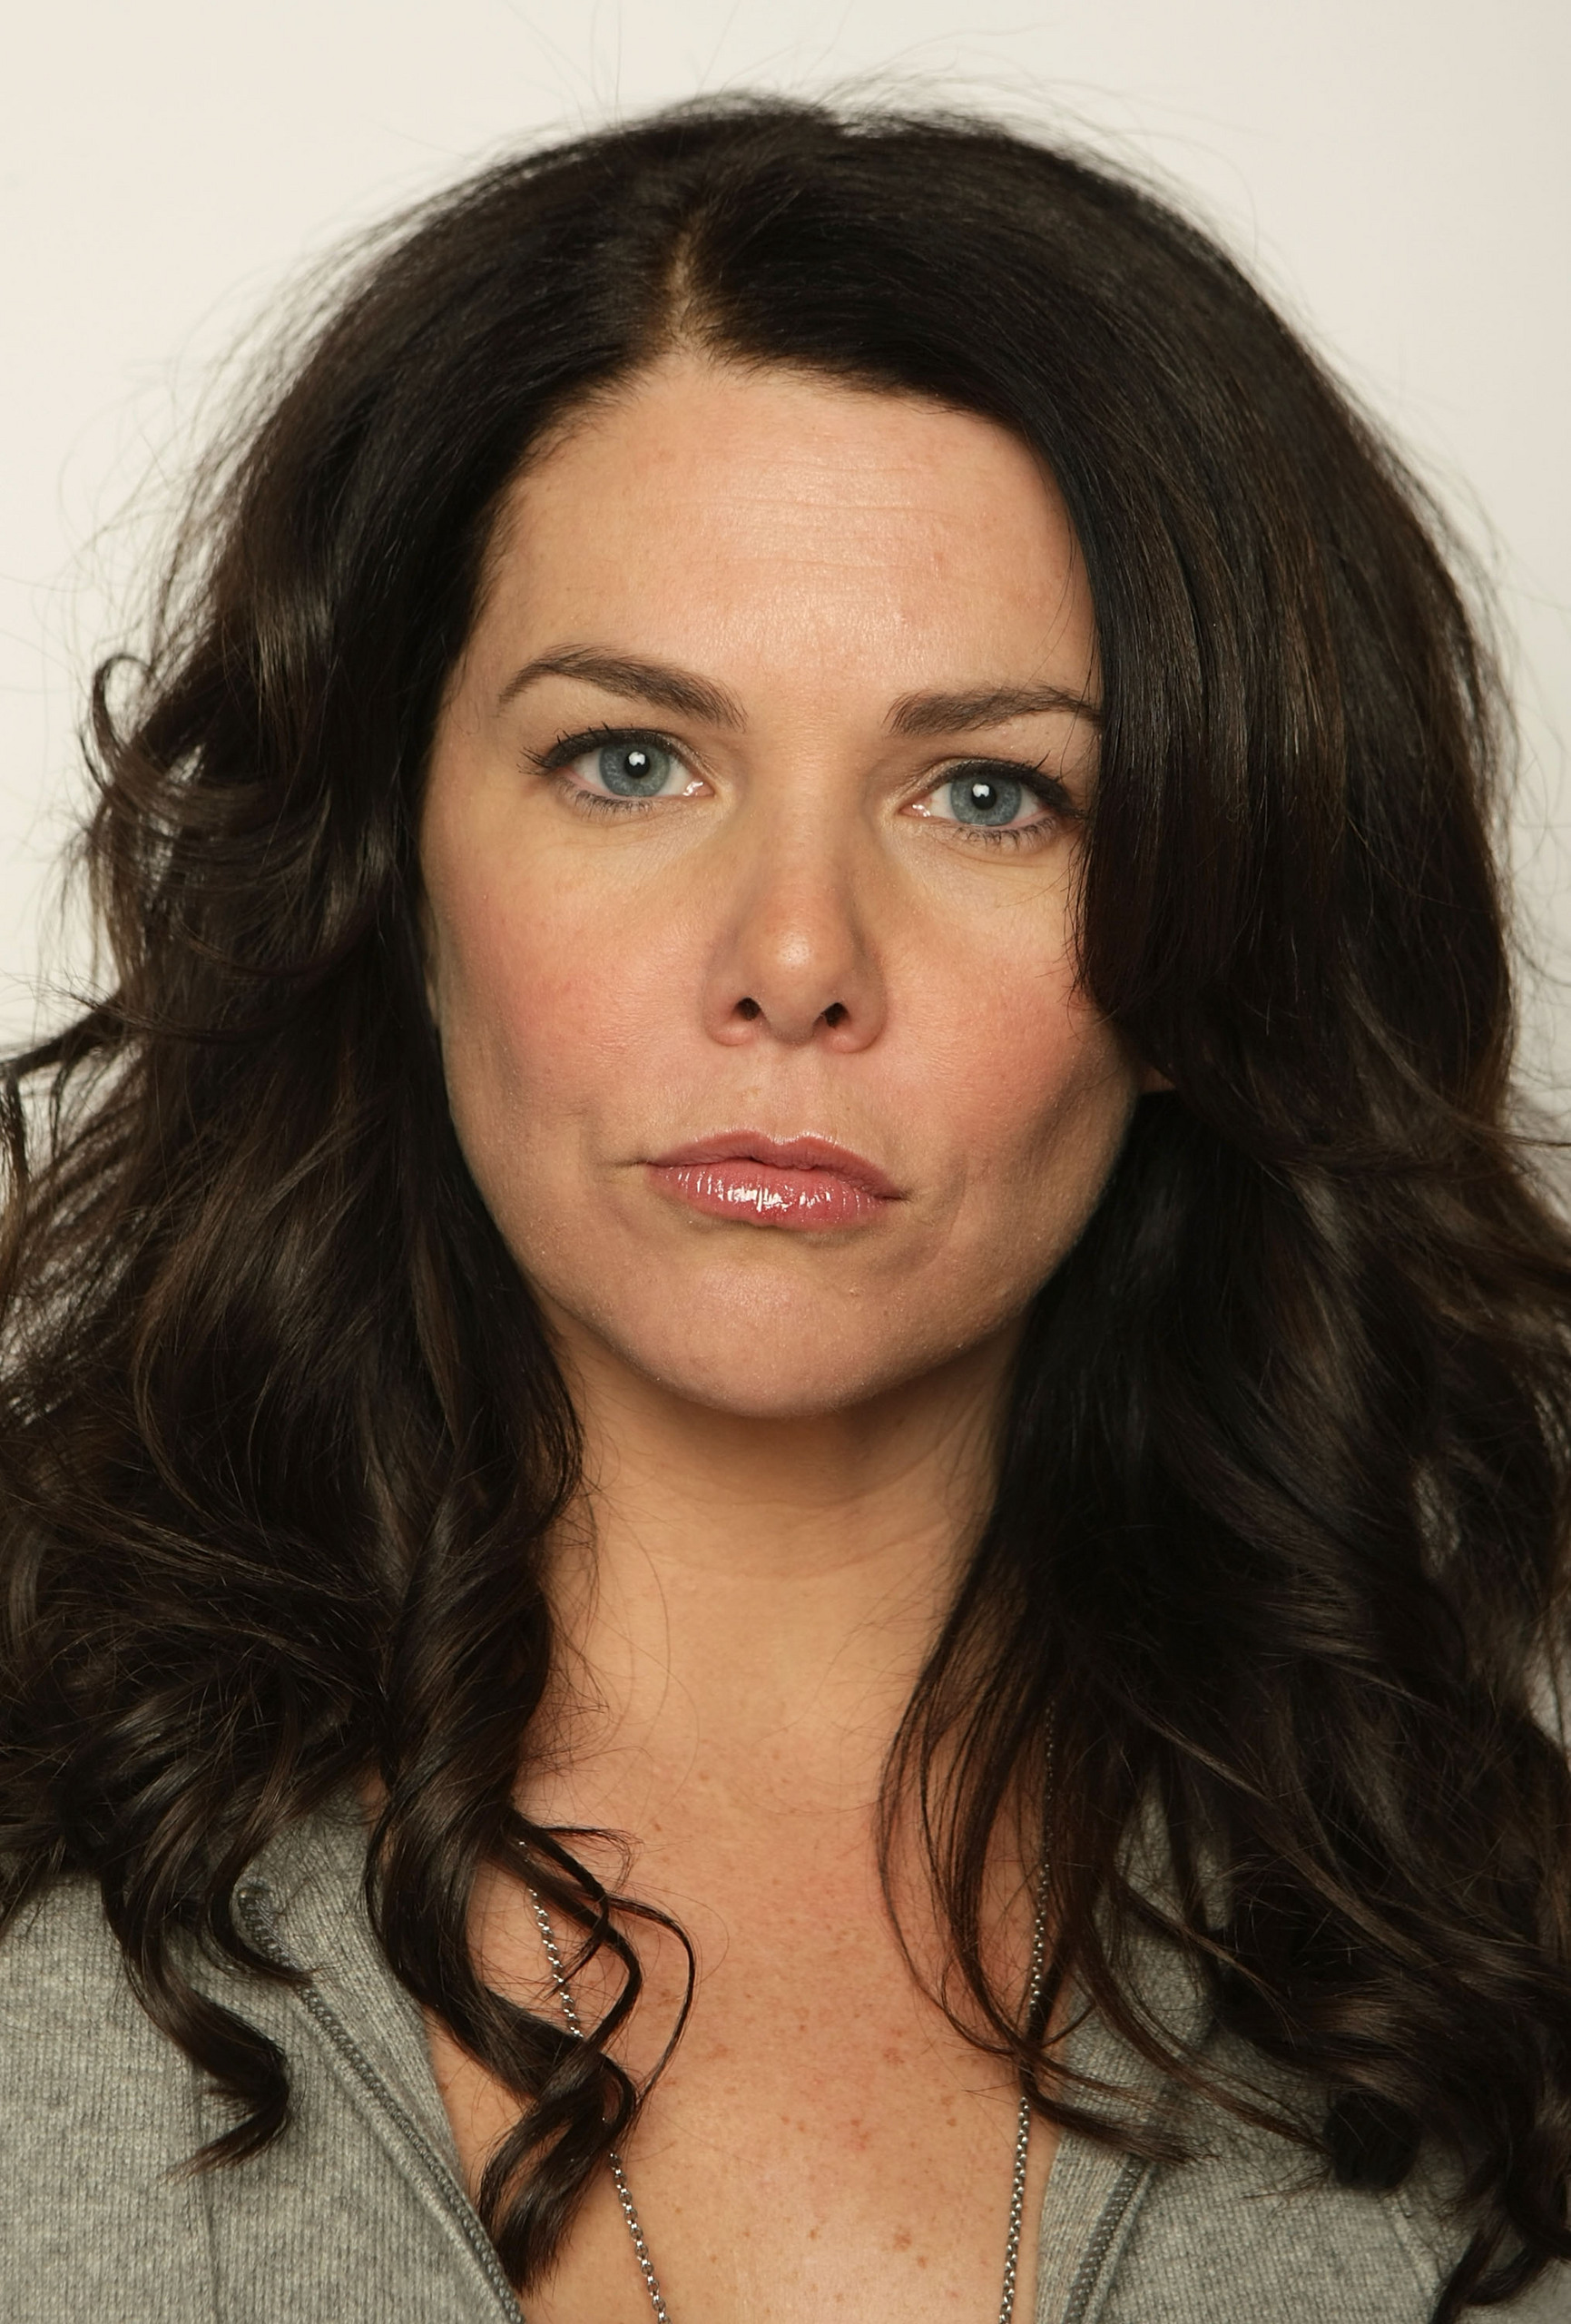 Hd Wallpapers 1080p Widescreen Cars Lauren Graham Wallpapers High Quality Download Free